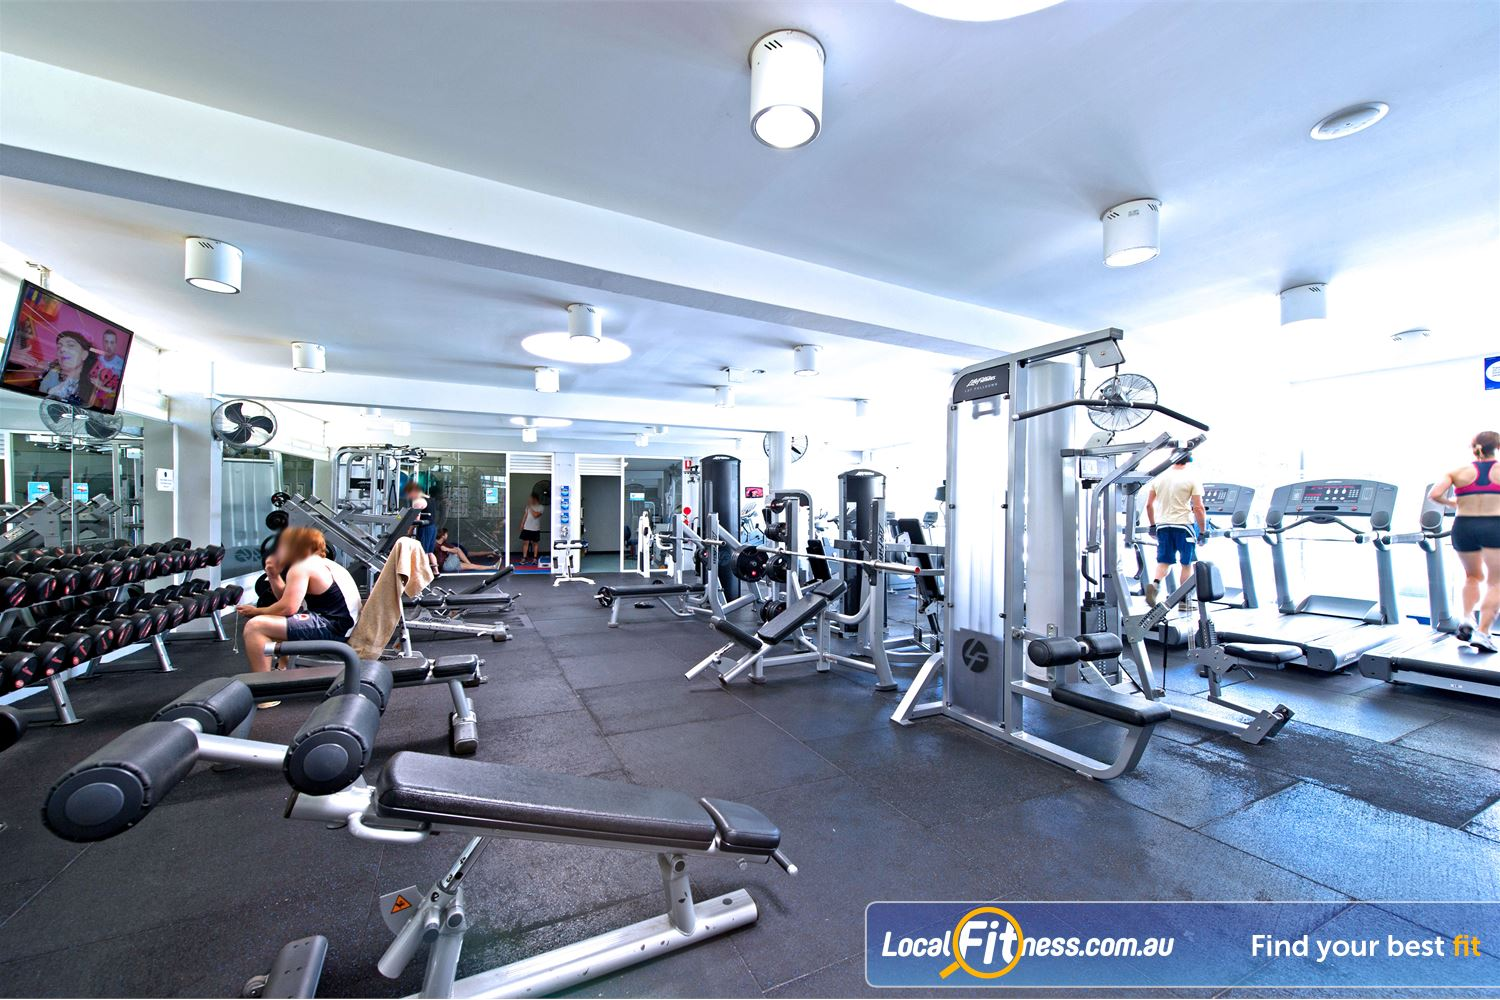 Victoria Park Pool Camperdown Enjoy the best equipment from Life Fitness and Hammer Strength.